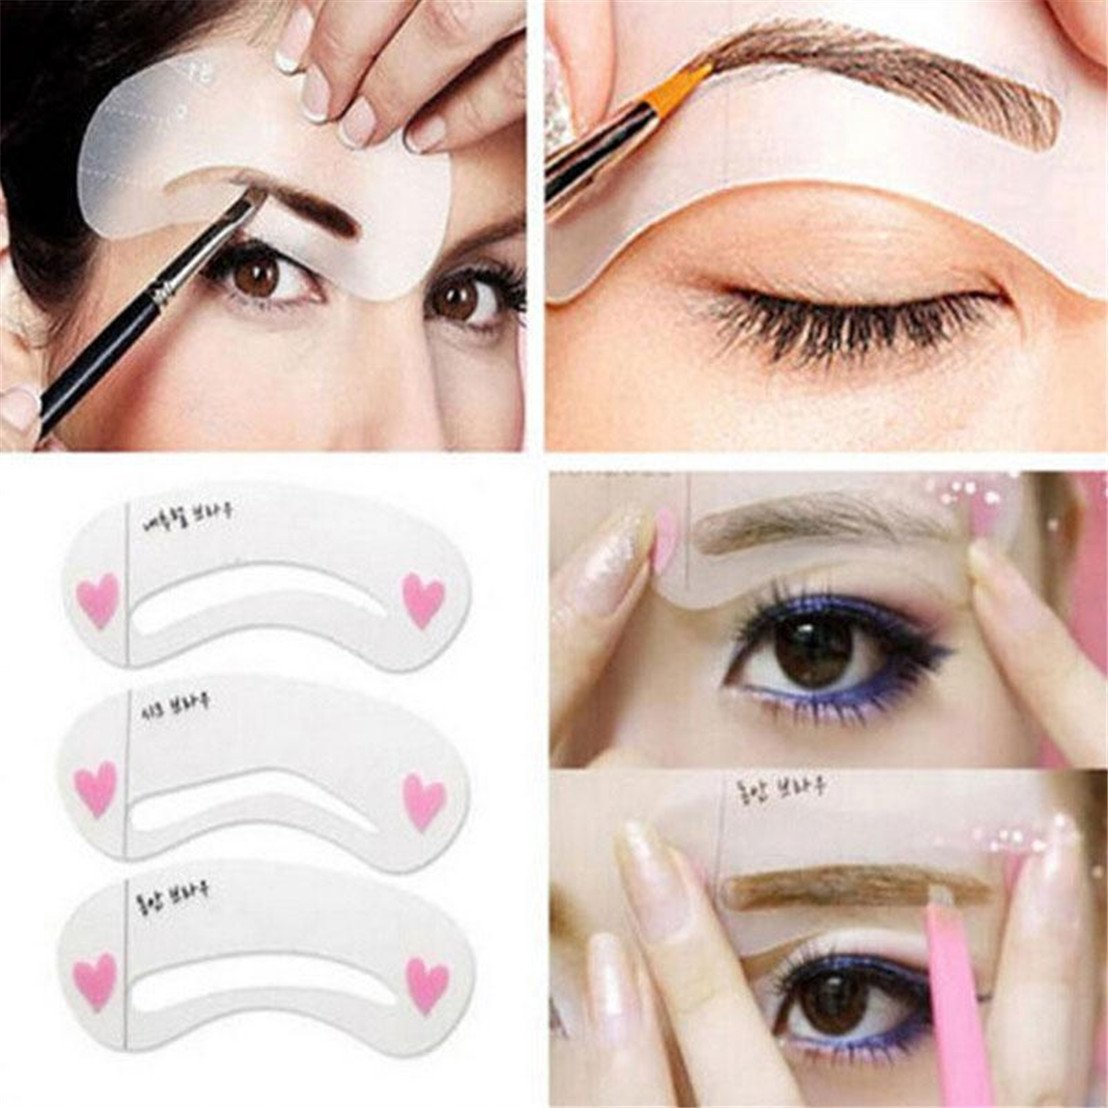 Cheap Eye Brow Stencil Find Deals On Line At Eyebrow Template Get Quotations Guangqi Model Grooming Makeup Shaper Tool